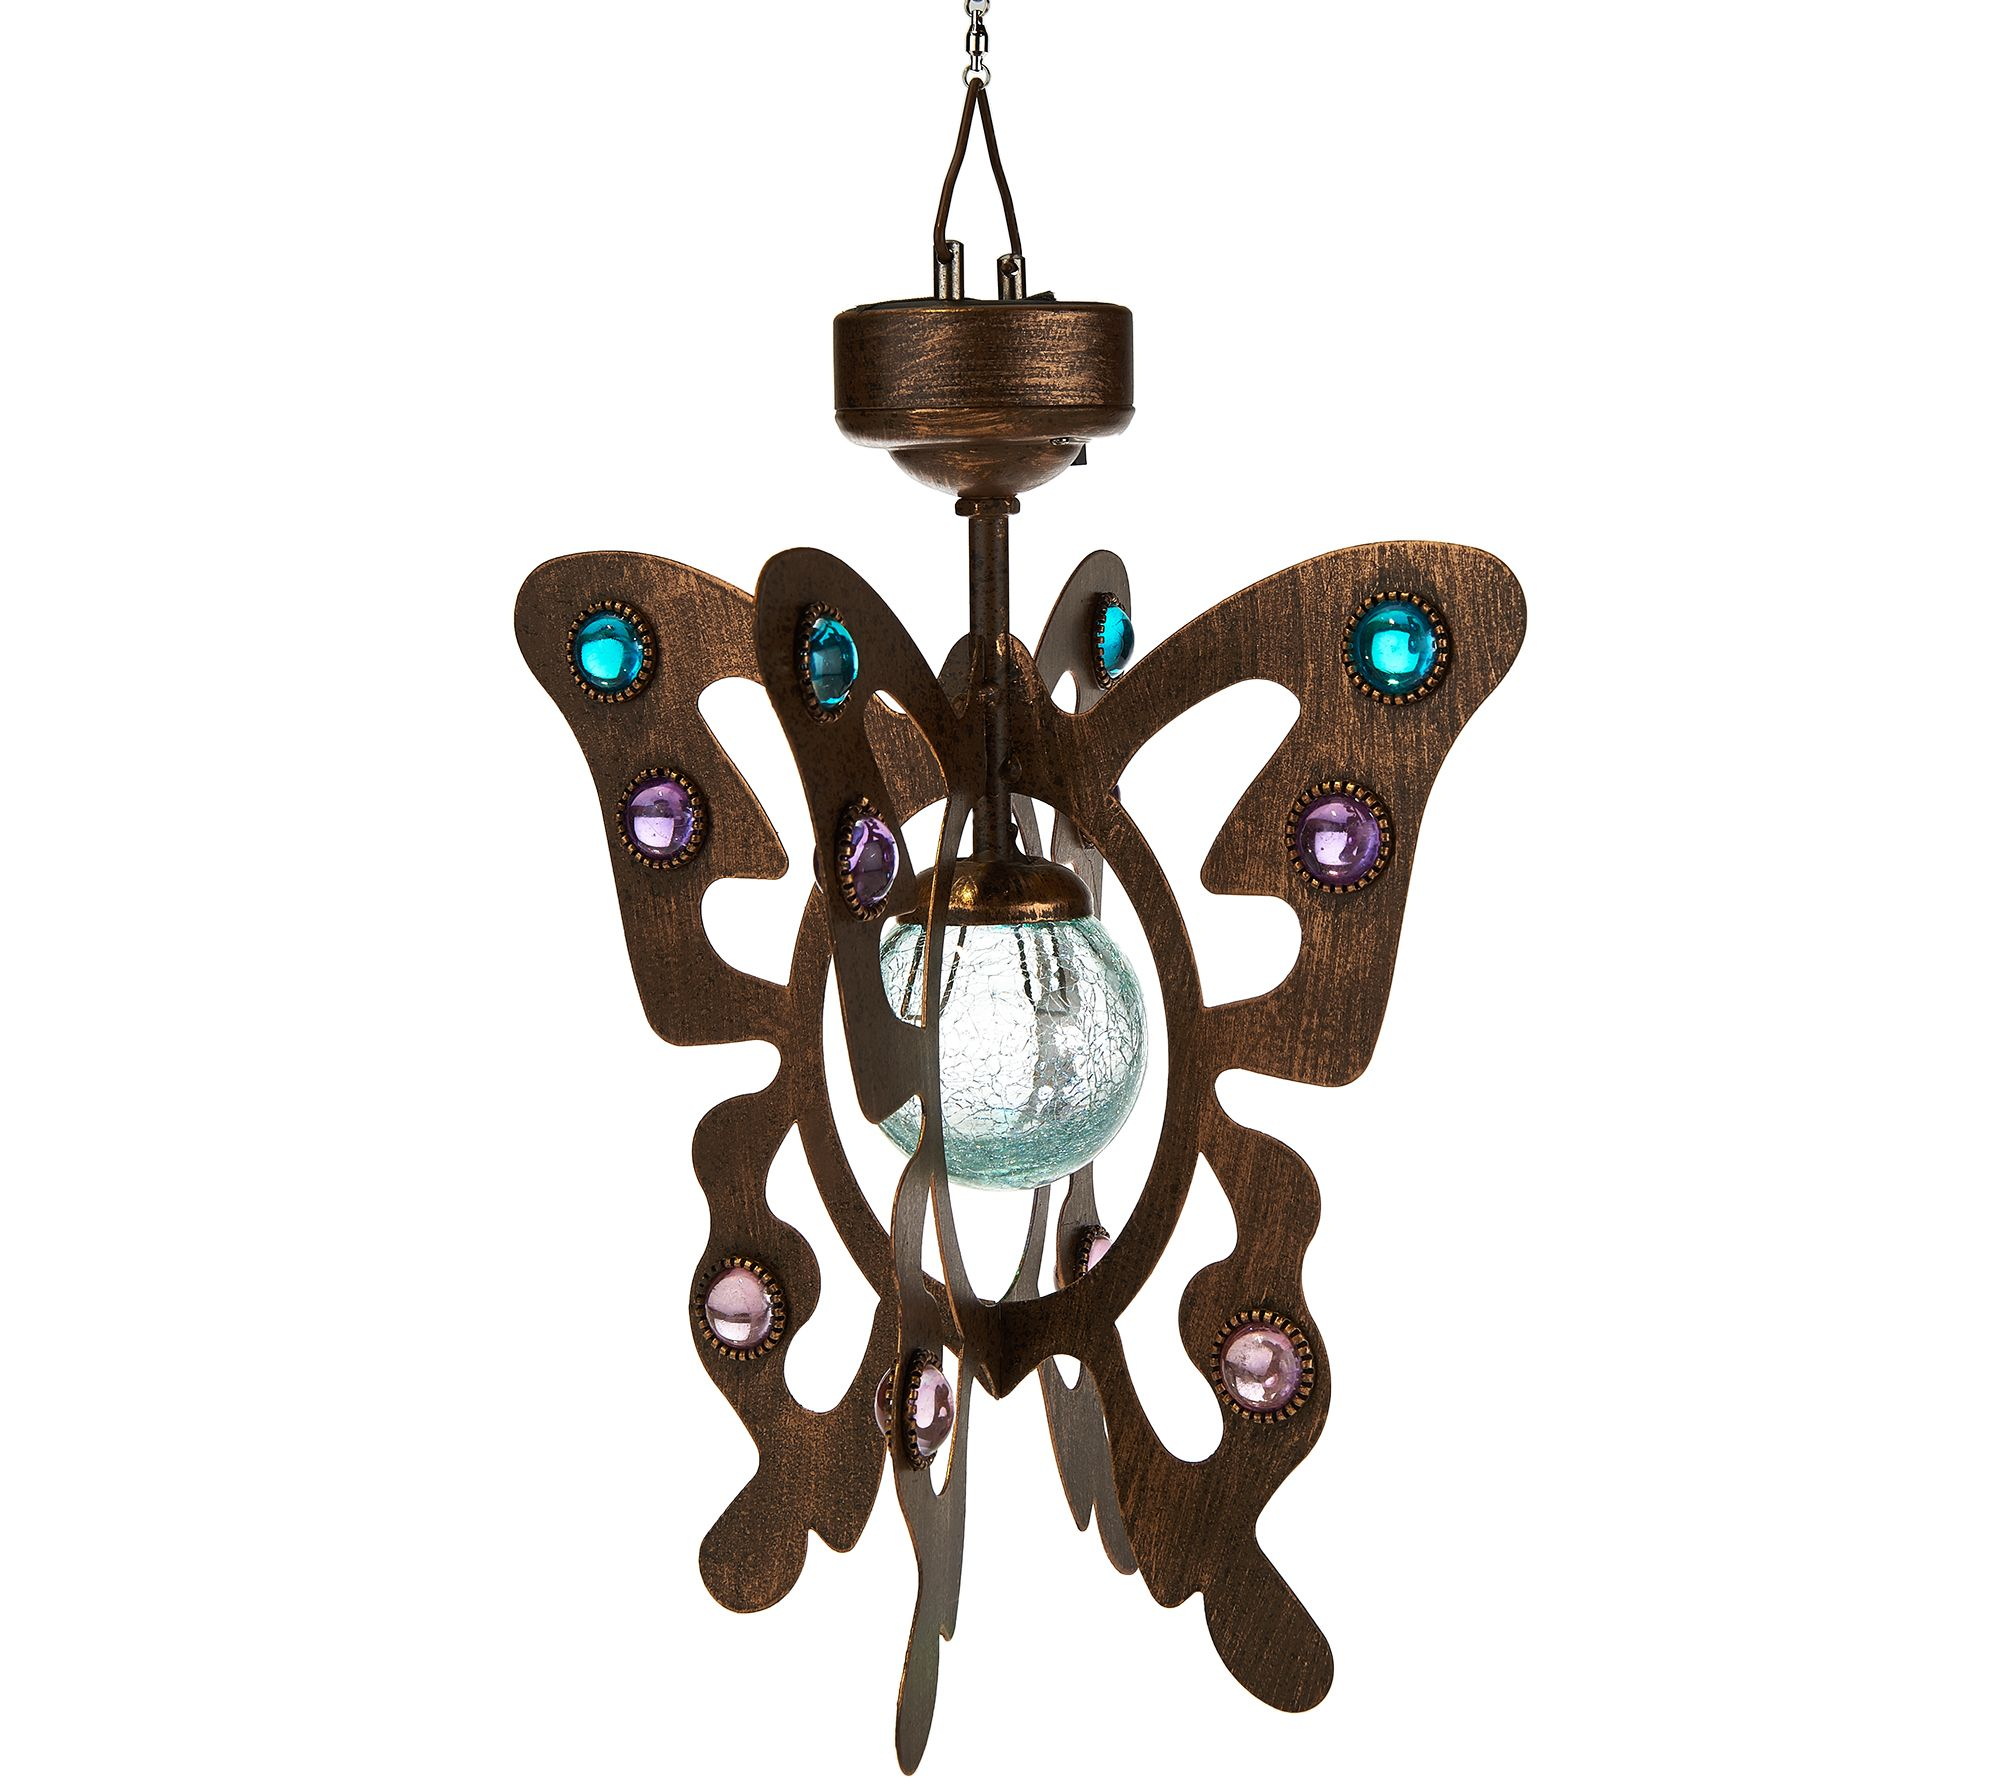 Qvc Outdoor Wall Lights: Compass Home Solar Hanging Wind Spinner With Crackle Glass